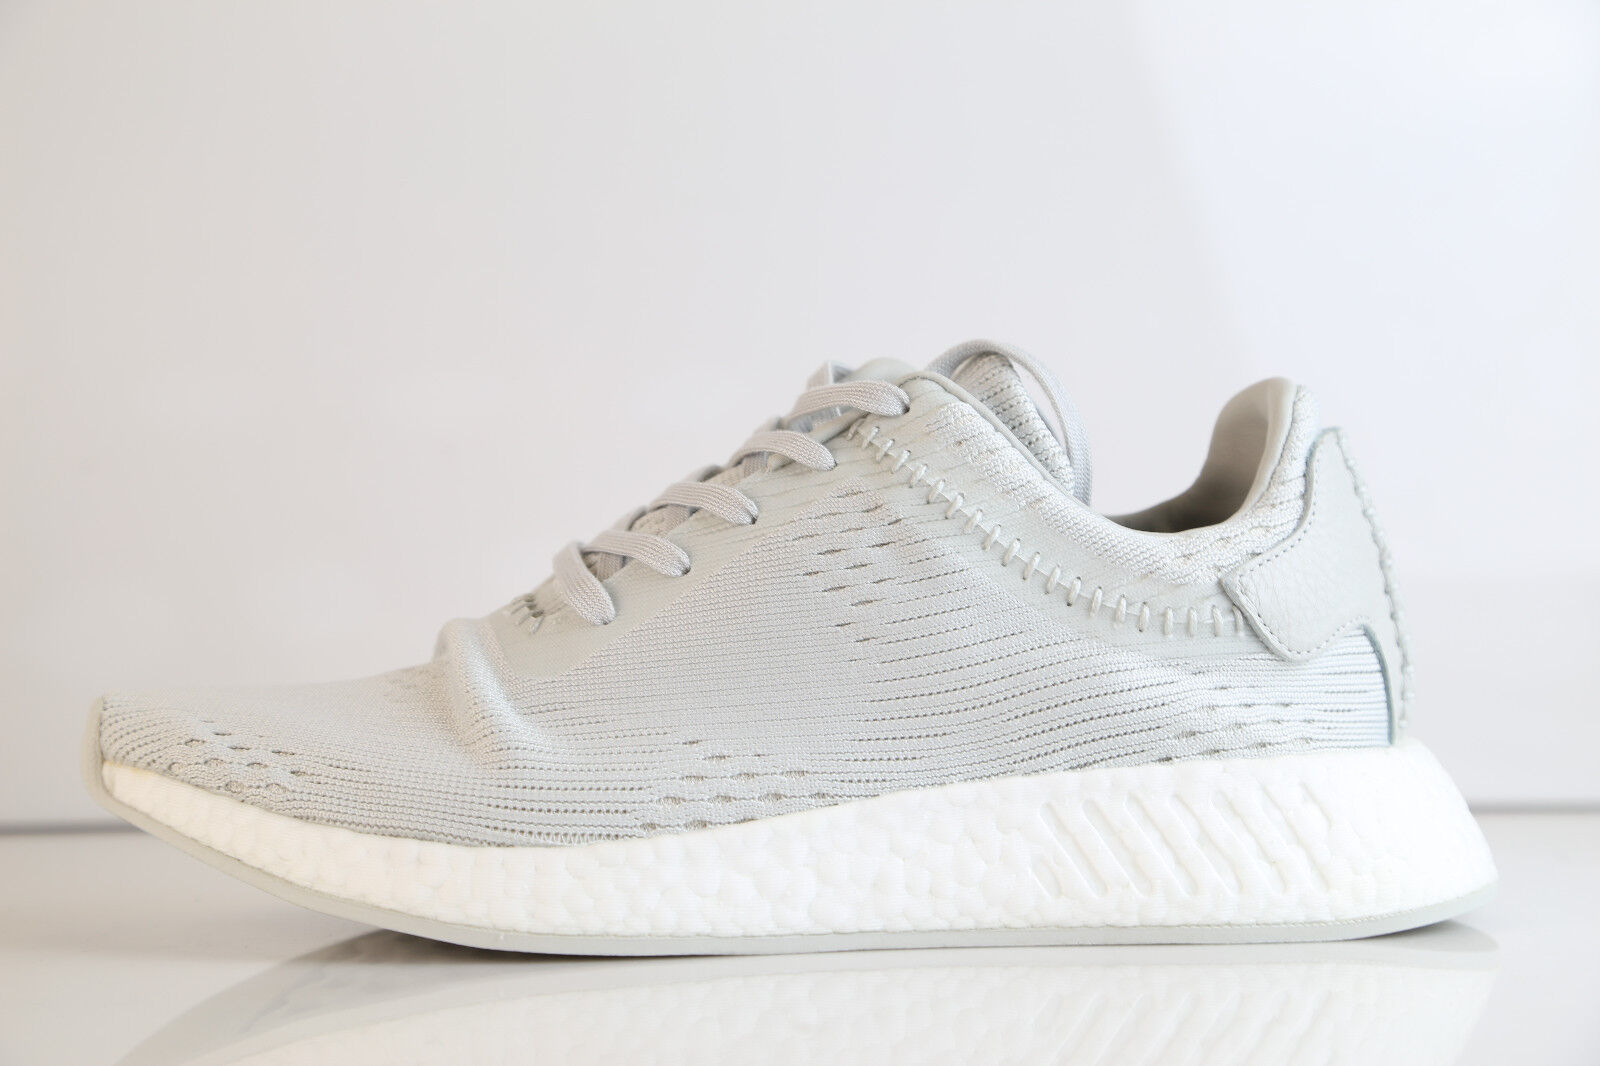 Adidas X Wings + Horns NMD R2 PK Hint knit Tan BB3118 5-13.5 prime knit Hint rf wang egg 474482